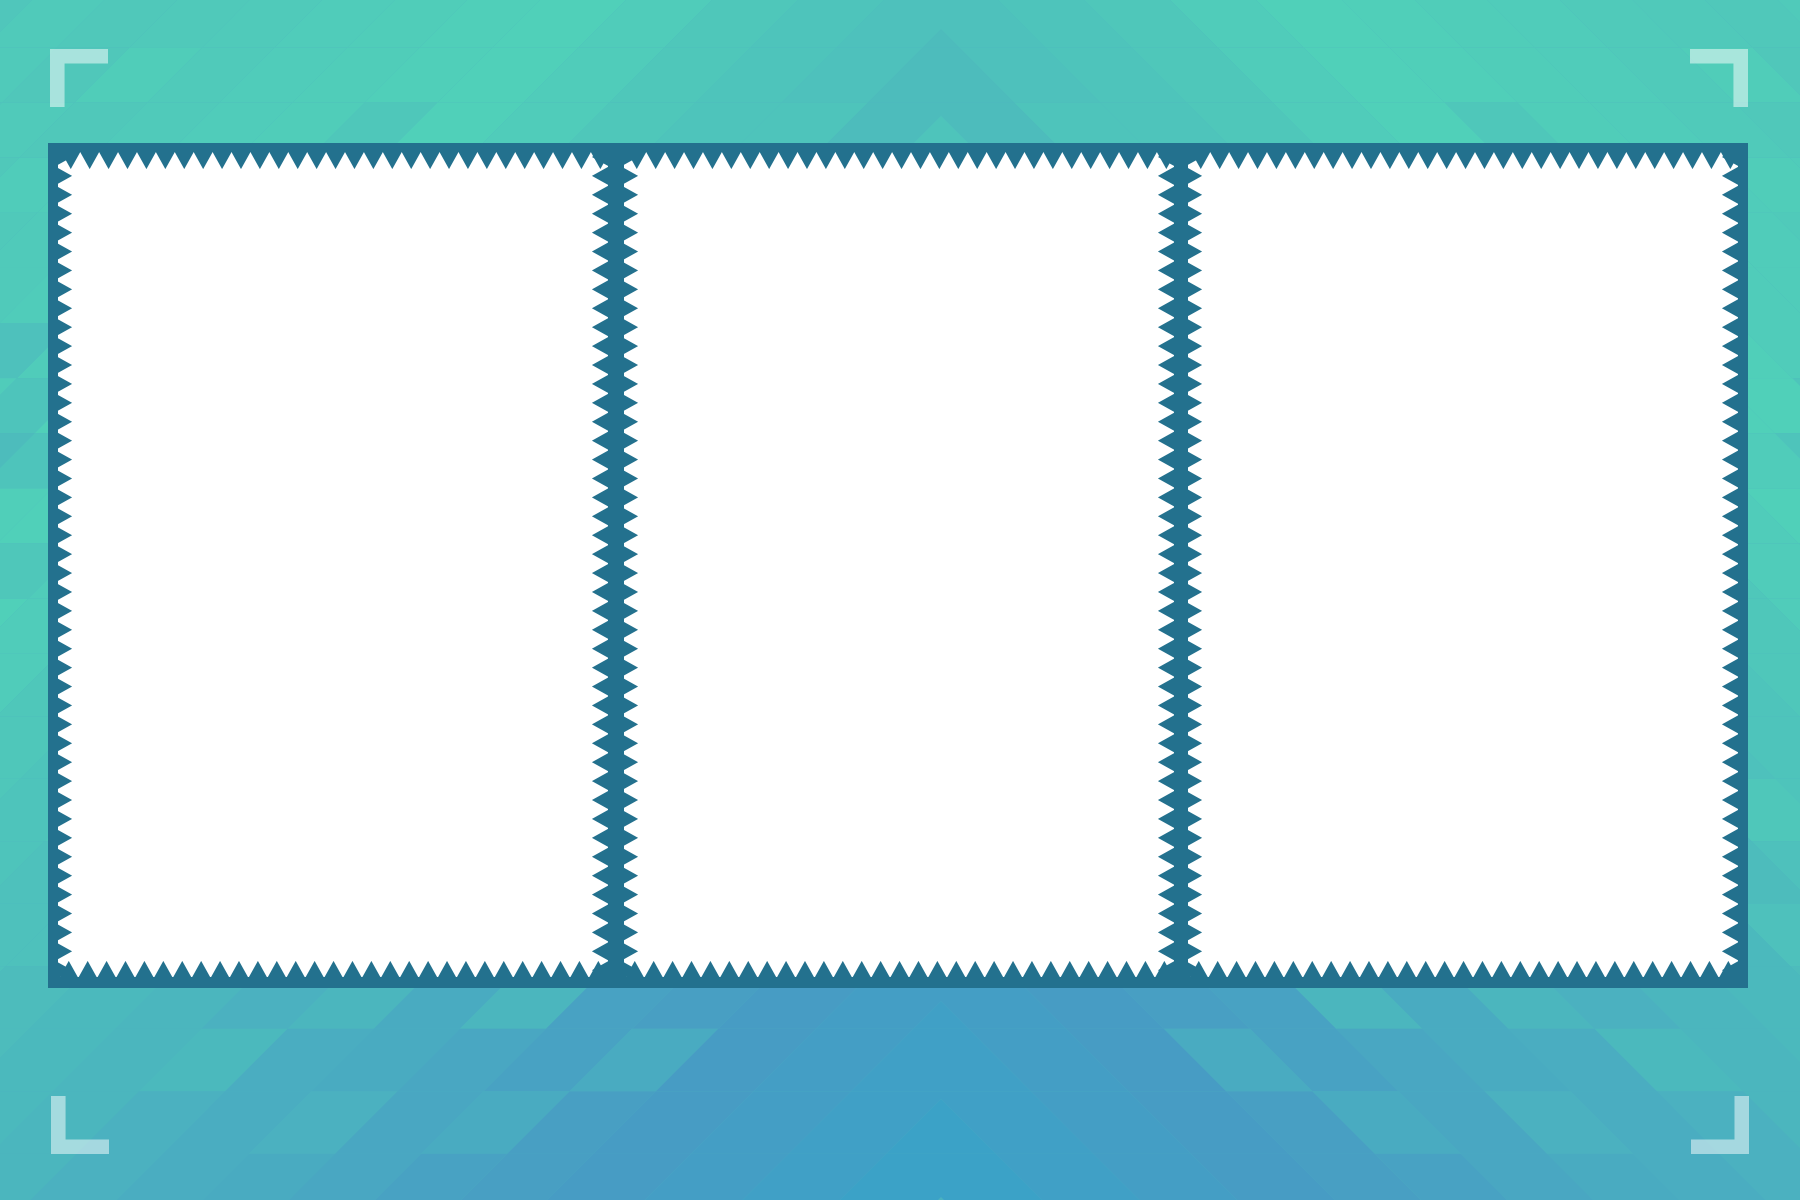 3V_Turquoise.png